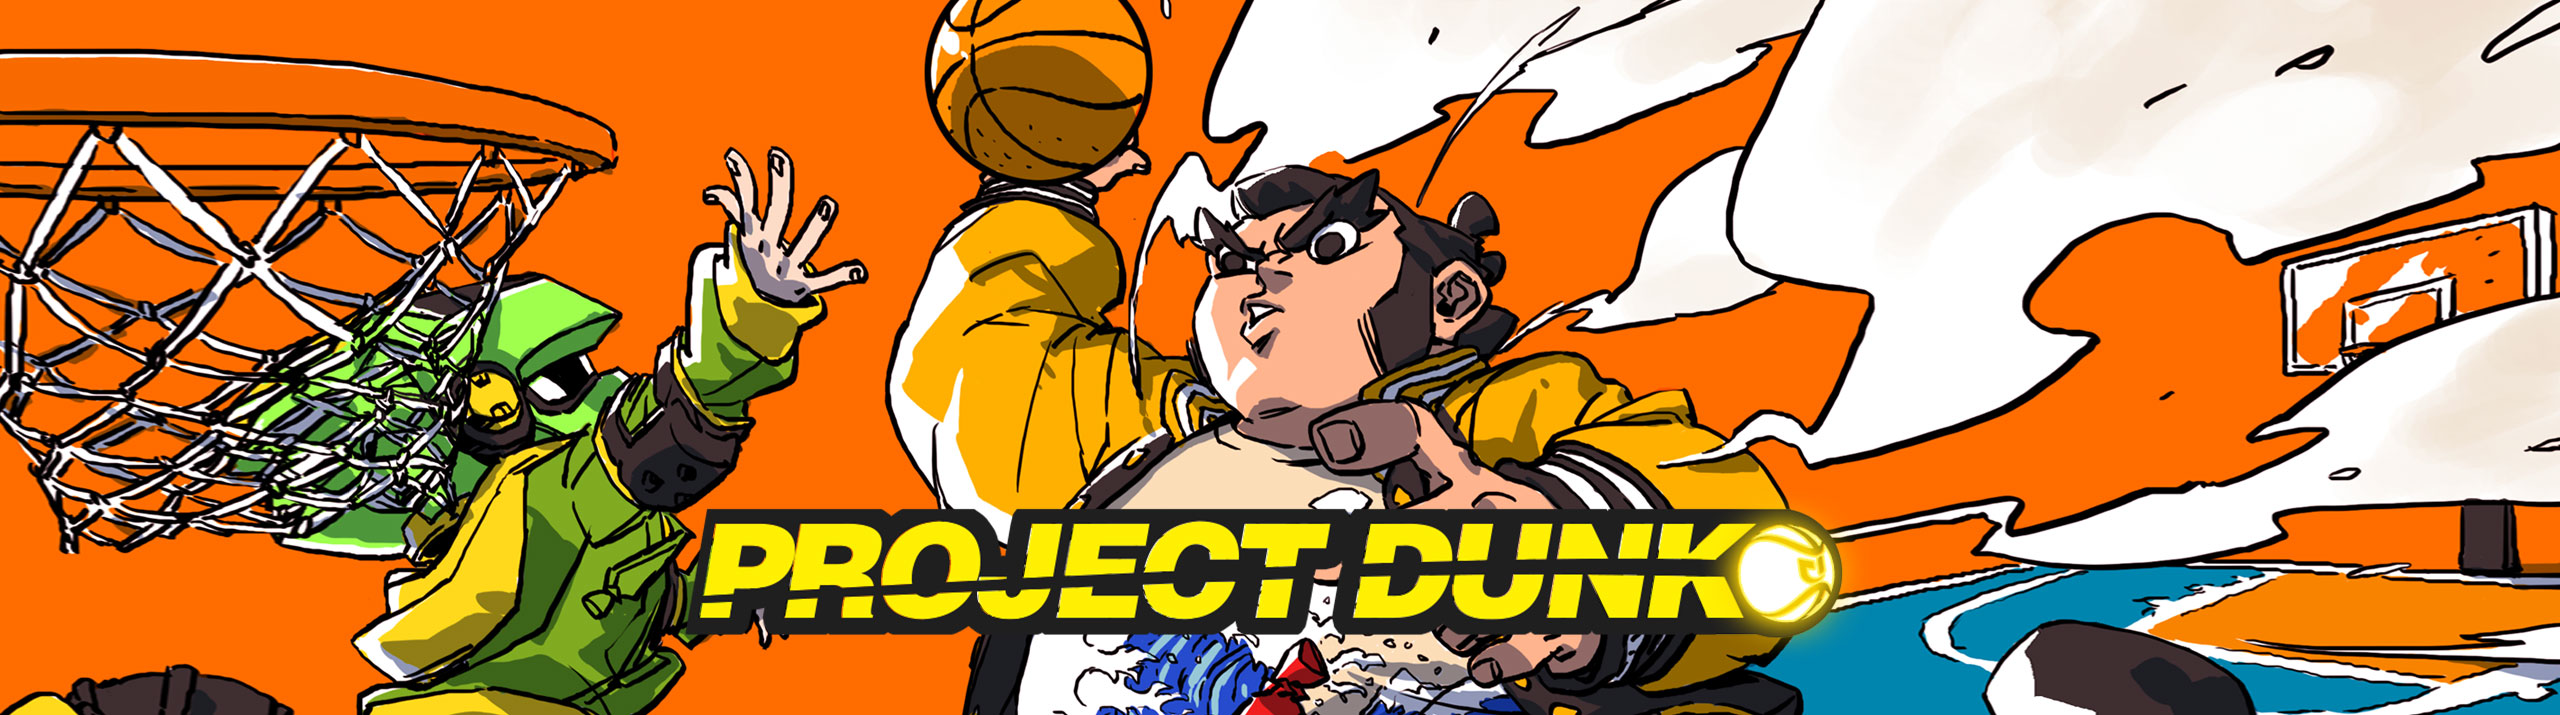 PROJECT DUNK